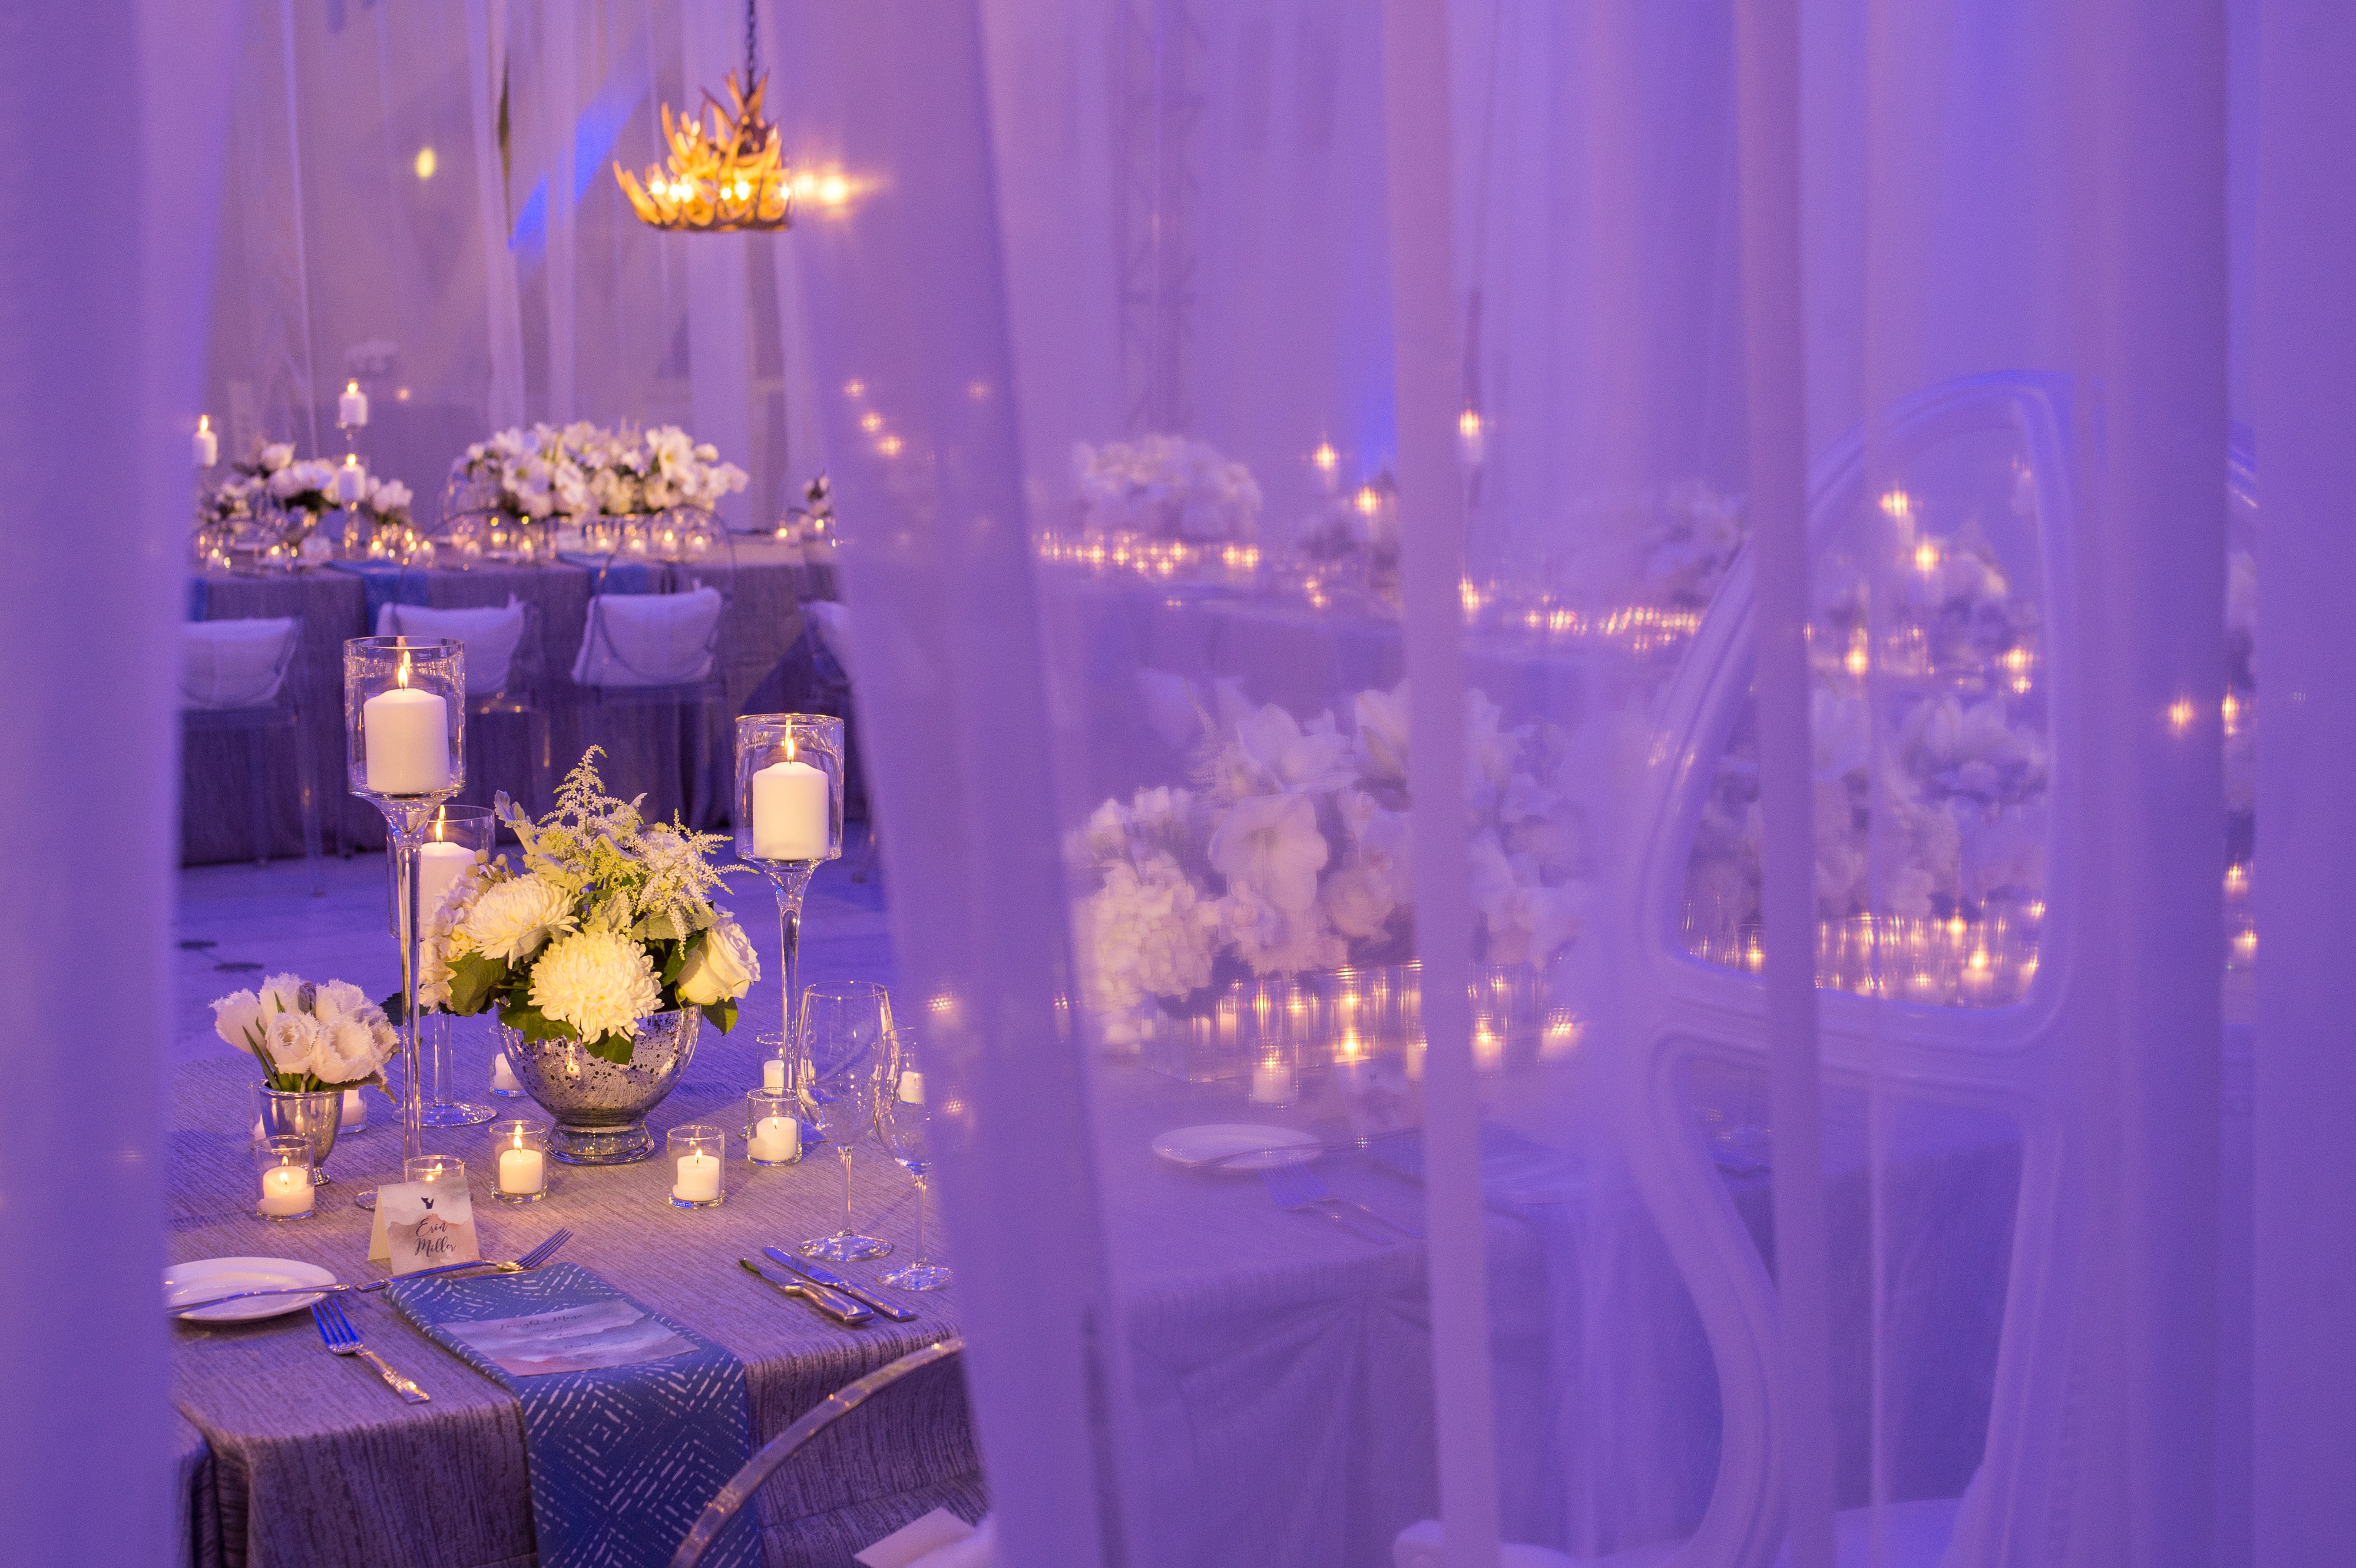 White Sheer created a soft, intimate setting at the Milwaukee Art Museum for this fabulous Winter wedding